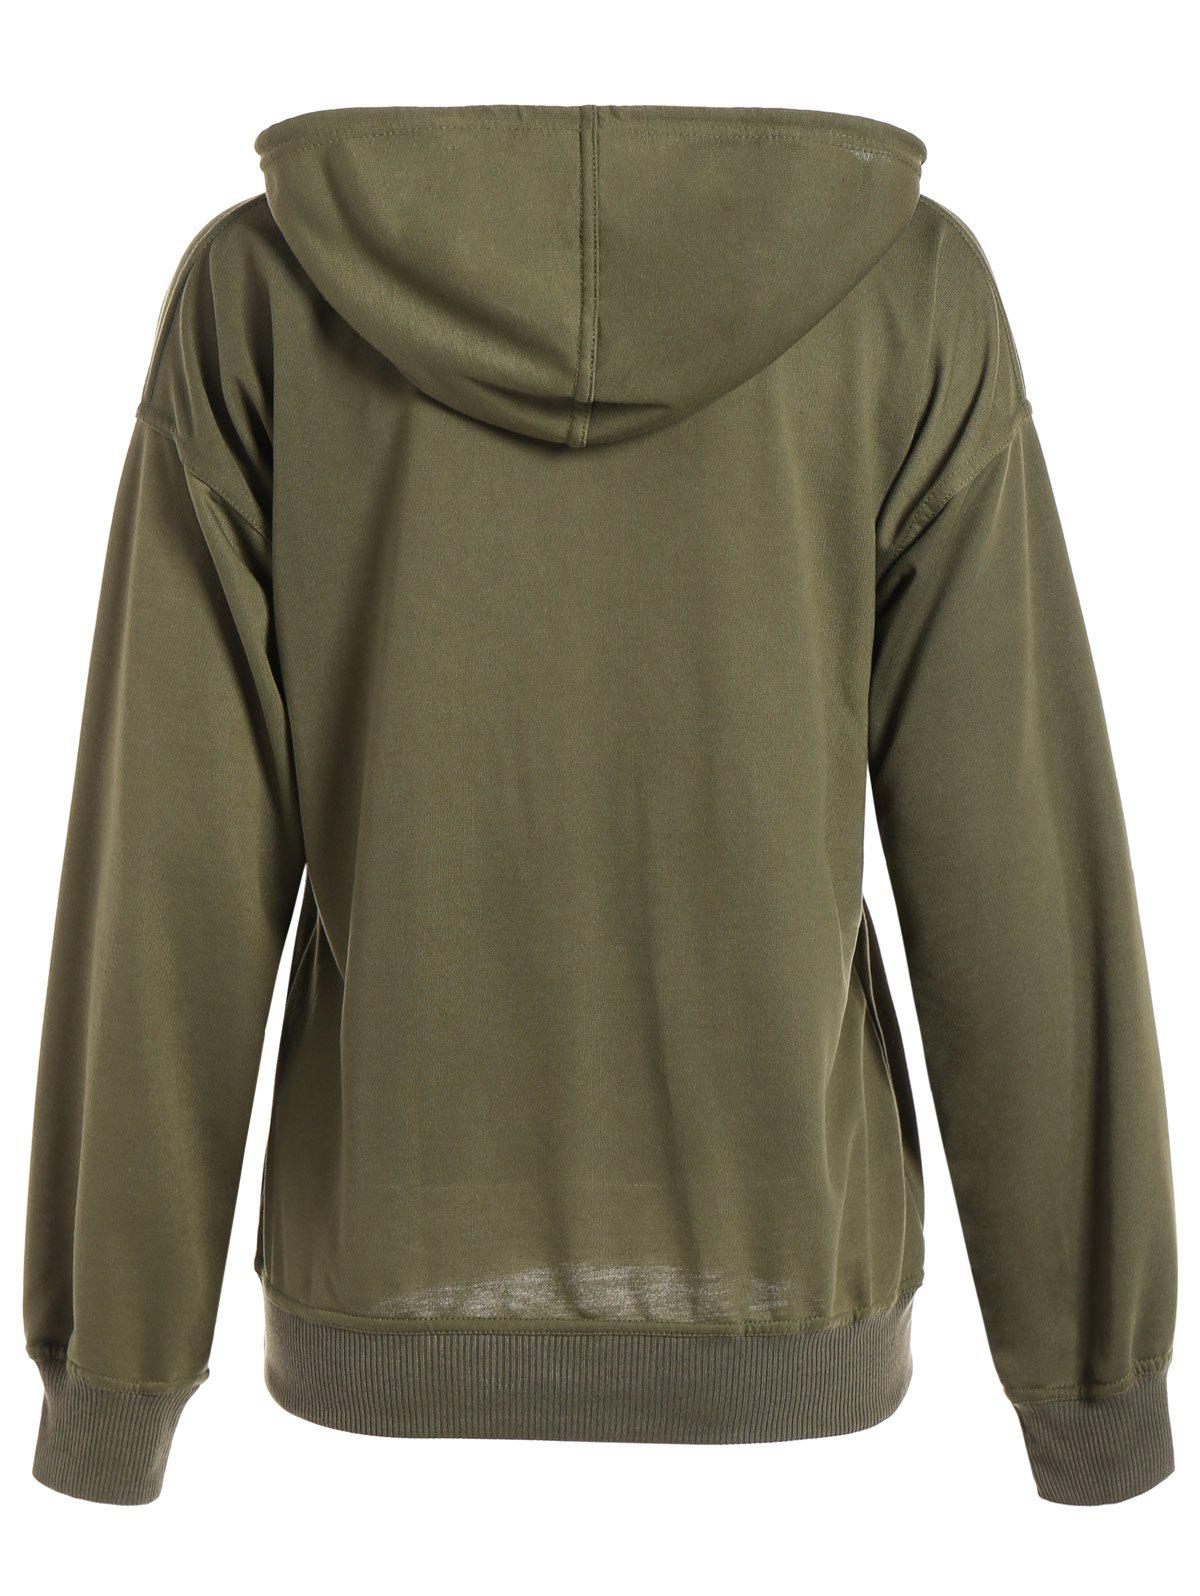 Batwing Sleeve Drawstring Oversized Hoodie - ARMY GREEN L